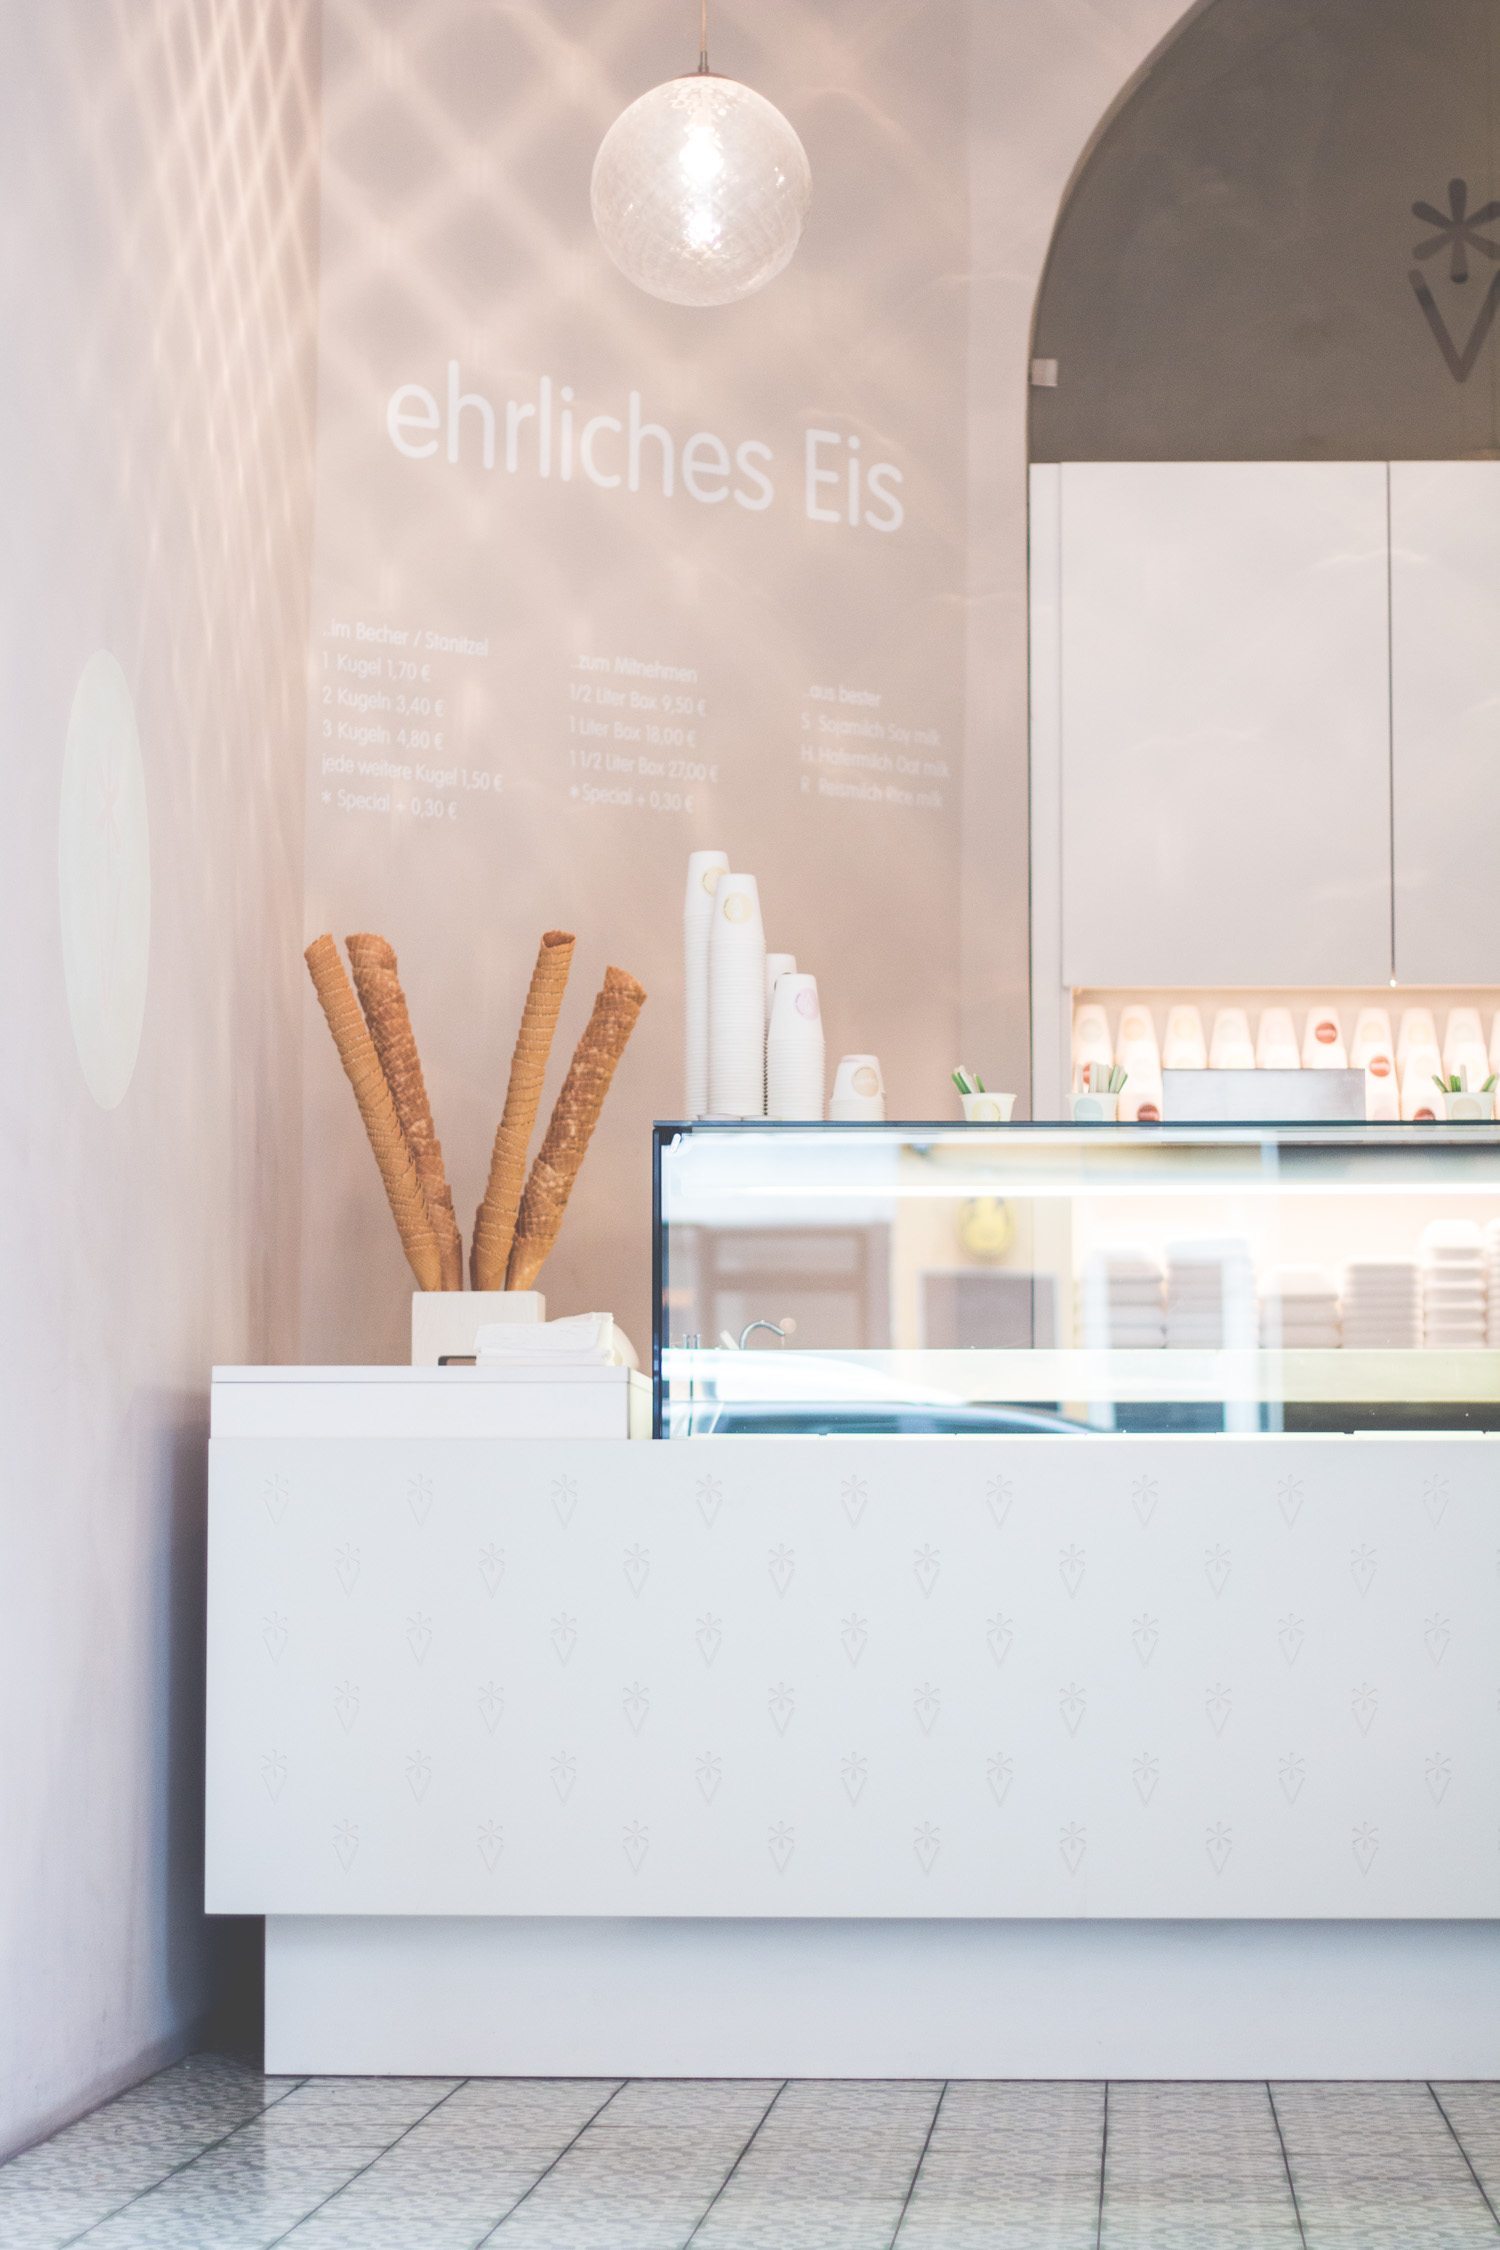 Vienna Picks: Veganista Icecream | The Daily Dose